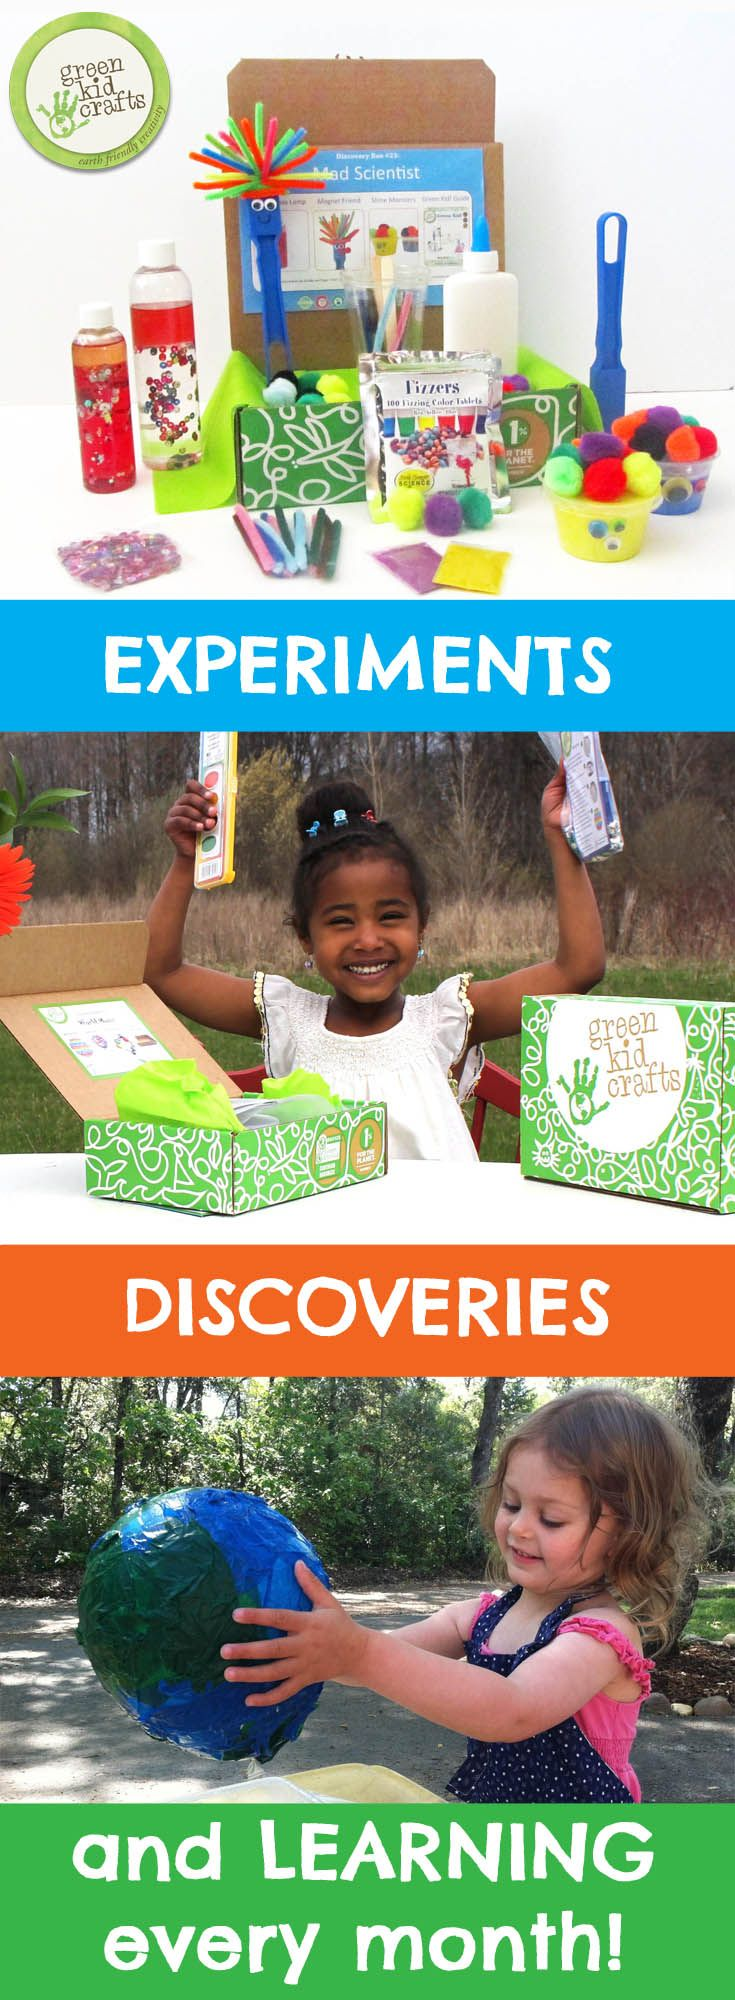 Monthly award-winning STEM and Creativity Kits for future scientists and artists!